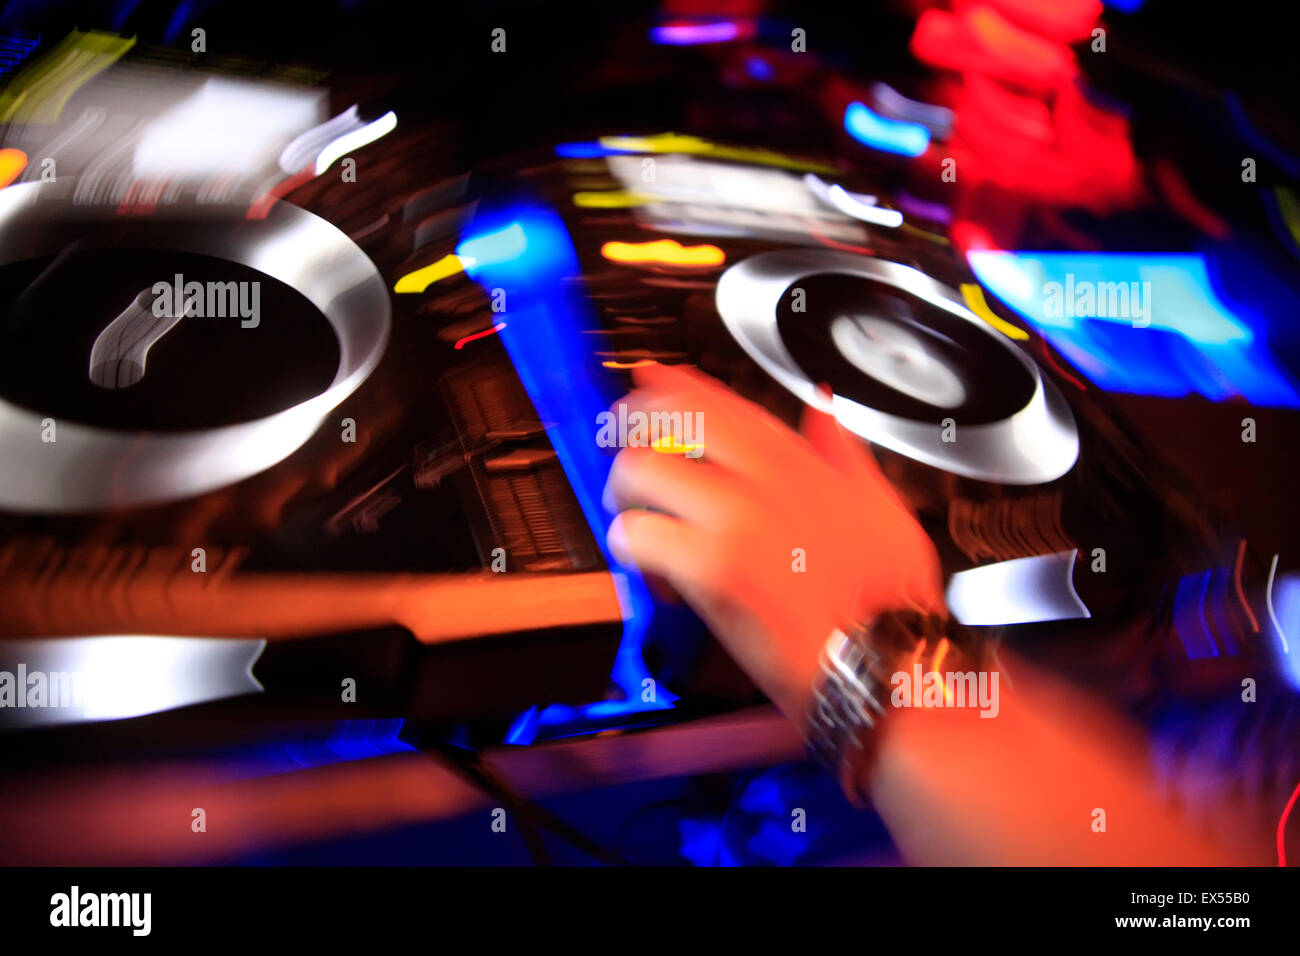 Colourful motion image of a DJ hand making mysic on the decks / sound mixing devices. Athens nightclub, Greece. - Stock Image